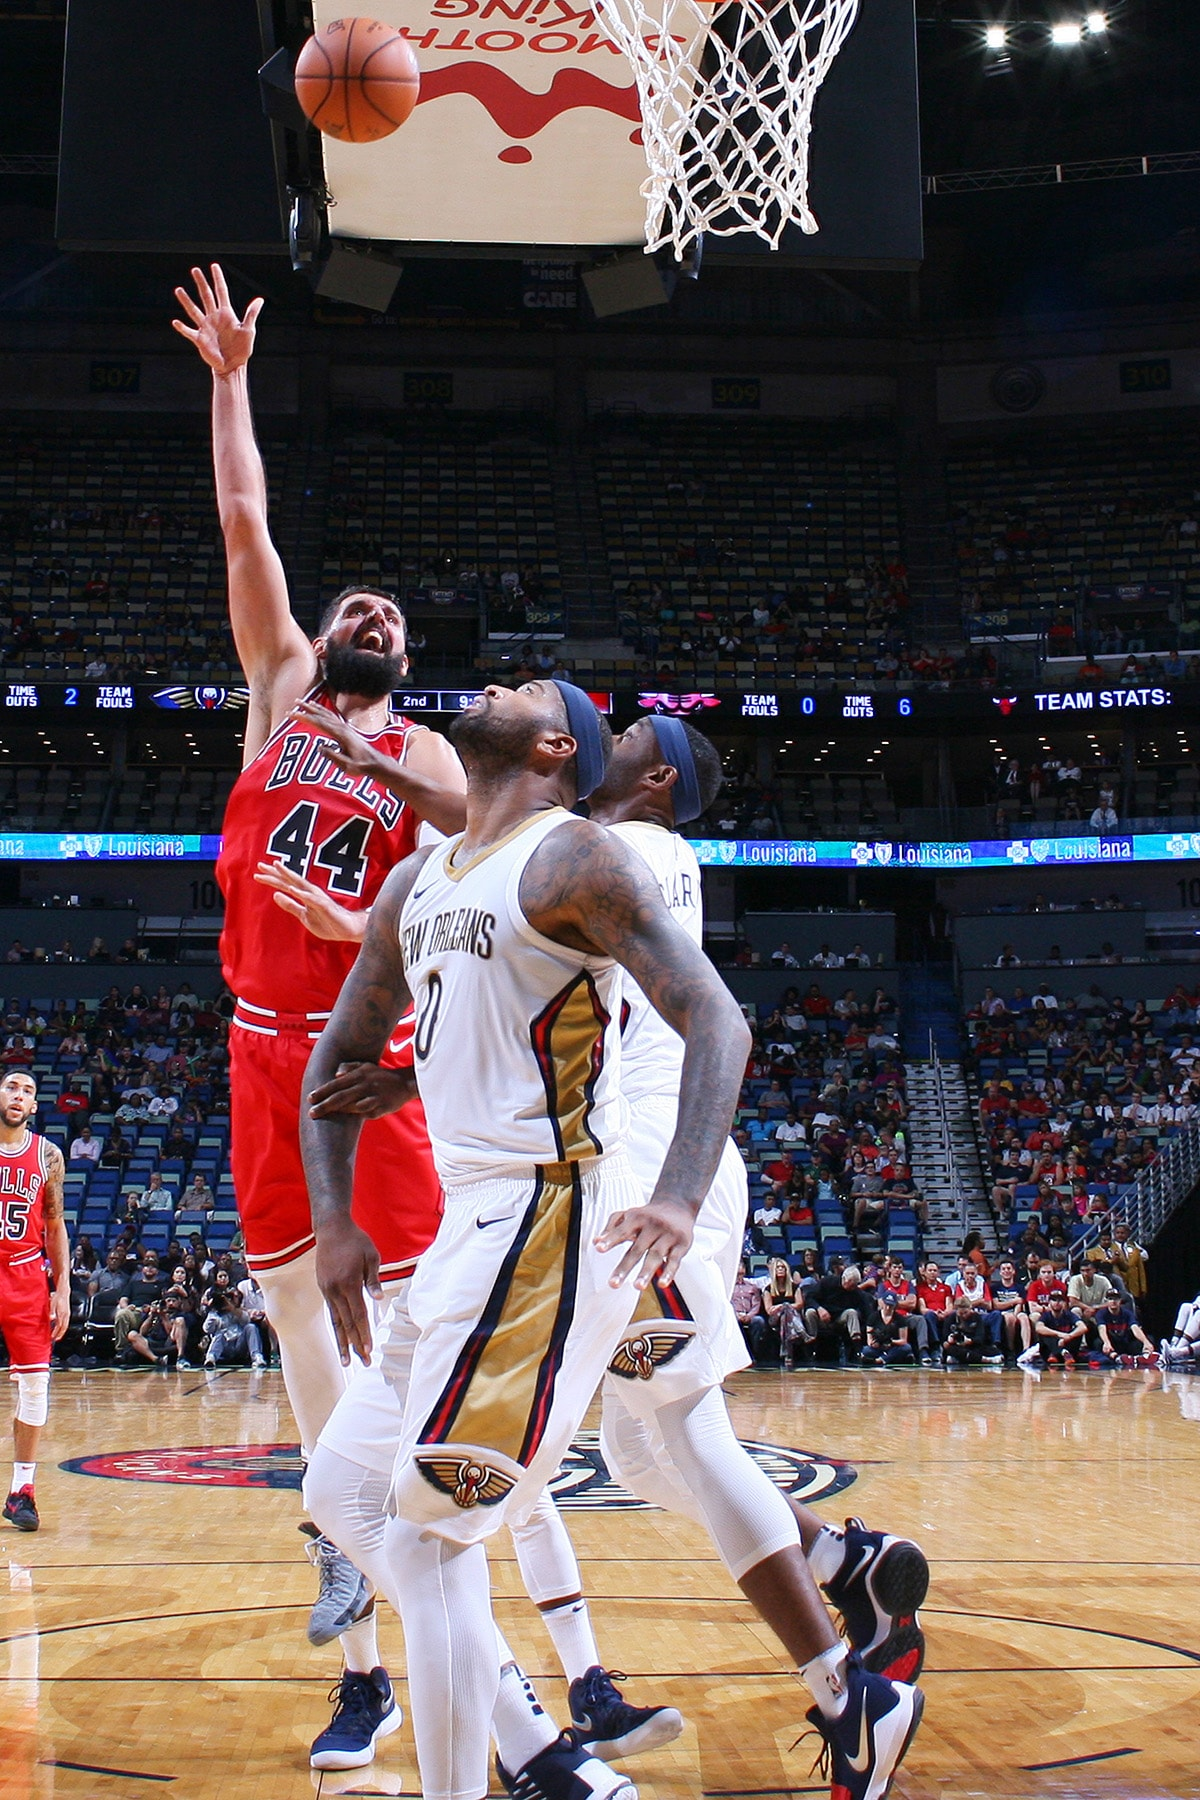 Nikola Mirotic #44 of the Chicago Bulls shoots the ball during a preseason game against the New Orleans Pelicans on October 3, 2017 at the Smoothie King Center in New Orleans, Louisiana.